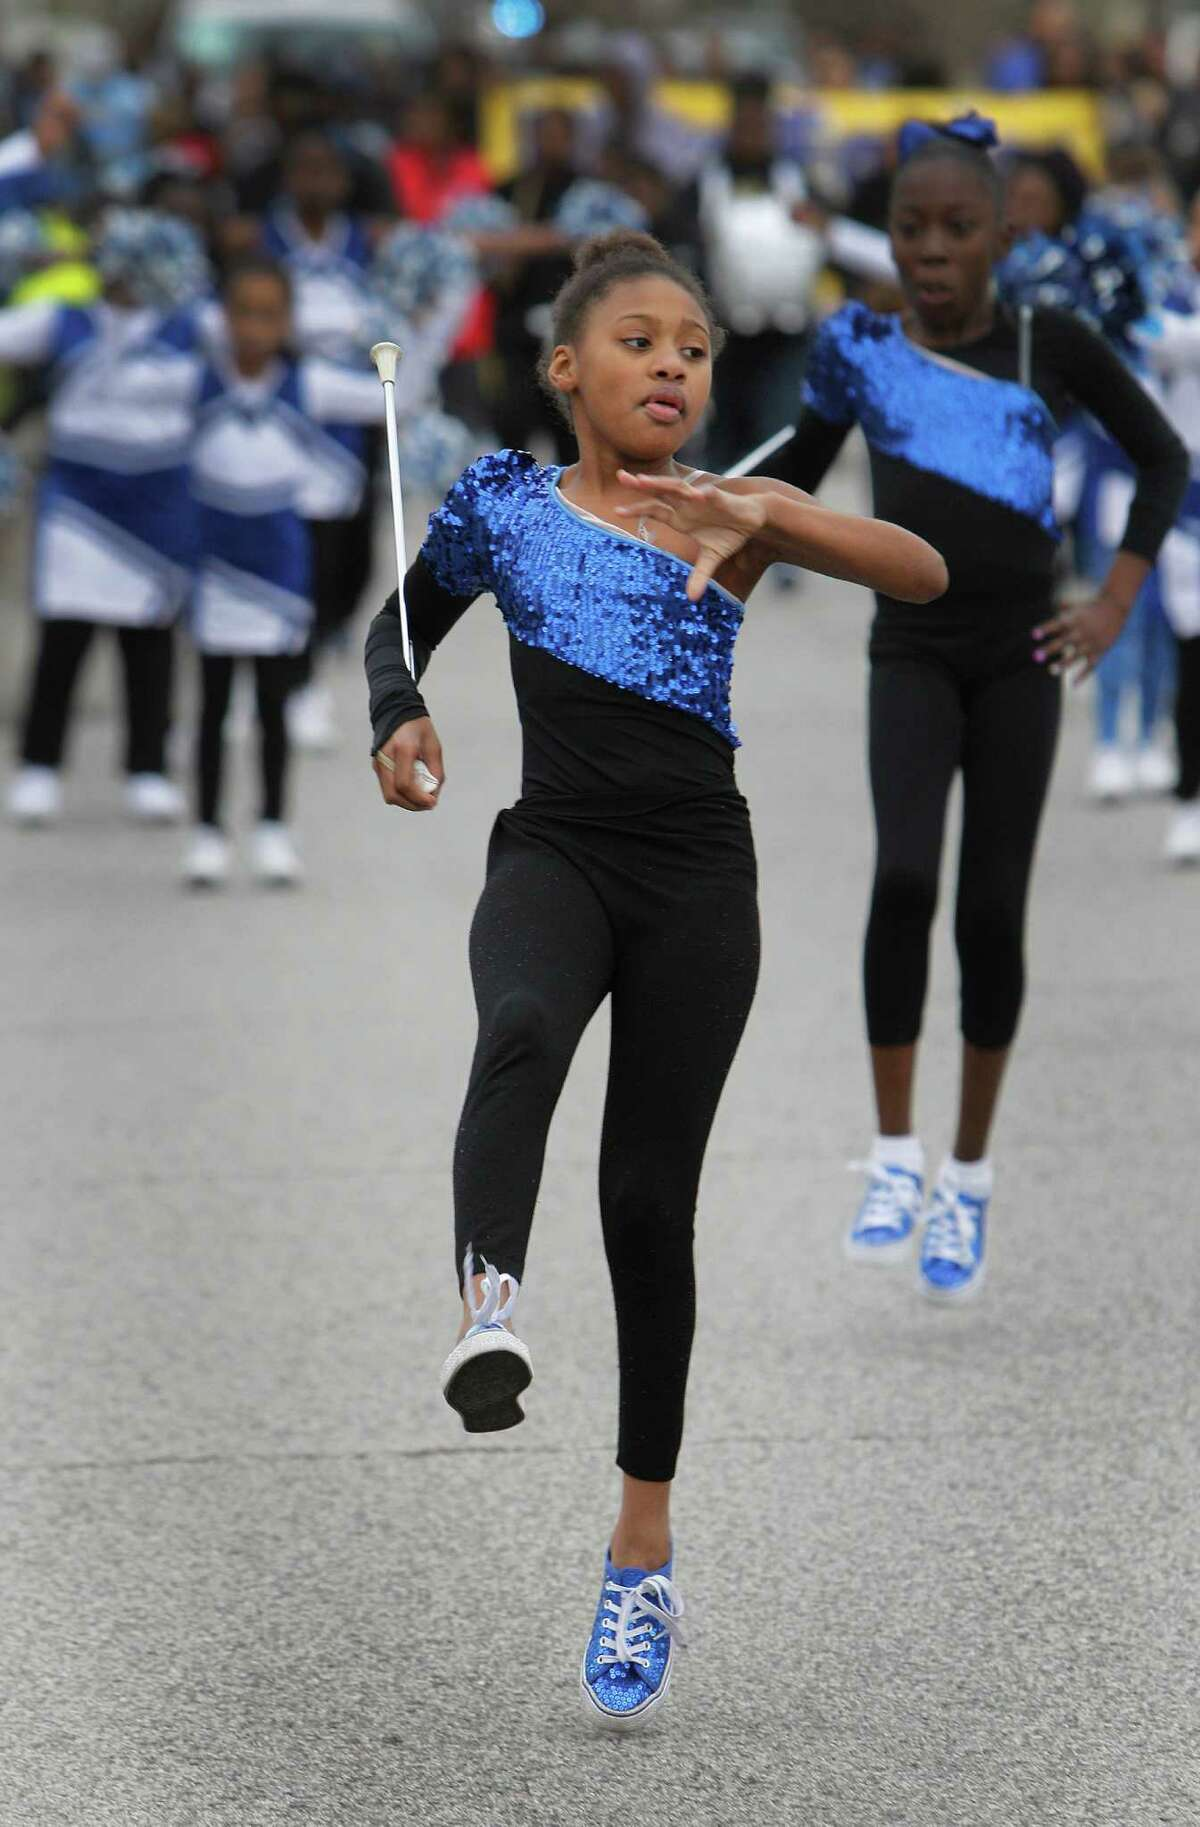 Kenadi Walker leads the Mading Elementary cheerleaders in the 2016 Black Heritage Society's MLK Children's March Saturday, Jan. 16, 2016, in Houston. The march started and circled MacGregor Park.